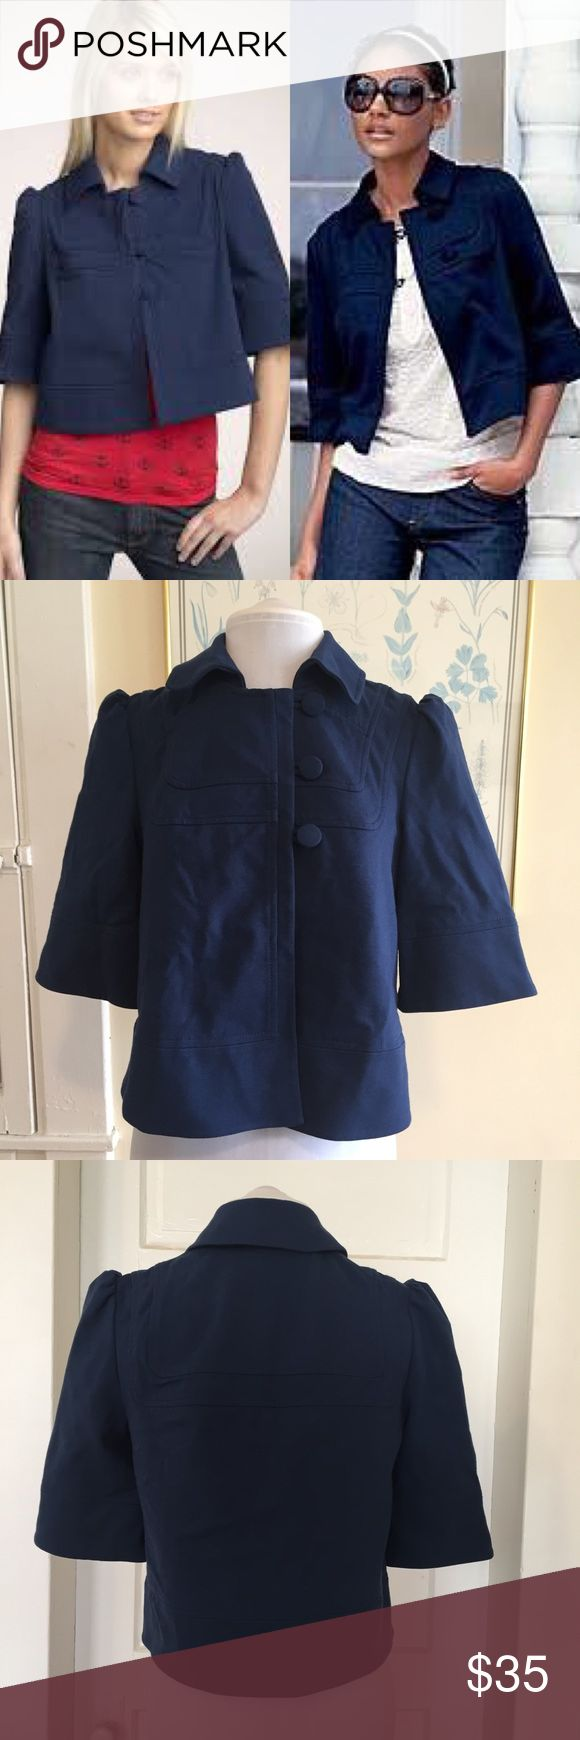 "{French Connection} ""Honky Tonk"" Navy Mod Swing The perfect transitional piece for spring! Heavy knit fabric, 3/4 sleeves, slightly puffed sleeves, and a cool swingy shape make this the perfect complement to skinny jeans and sun dresses alike! French Connection Jackets & Coats"